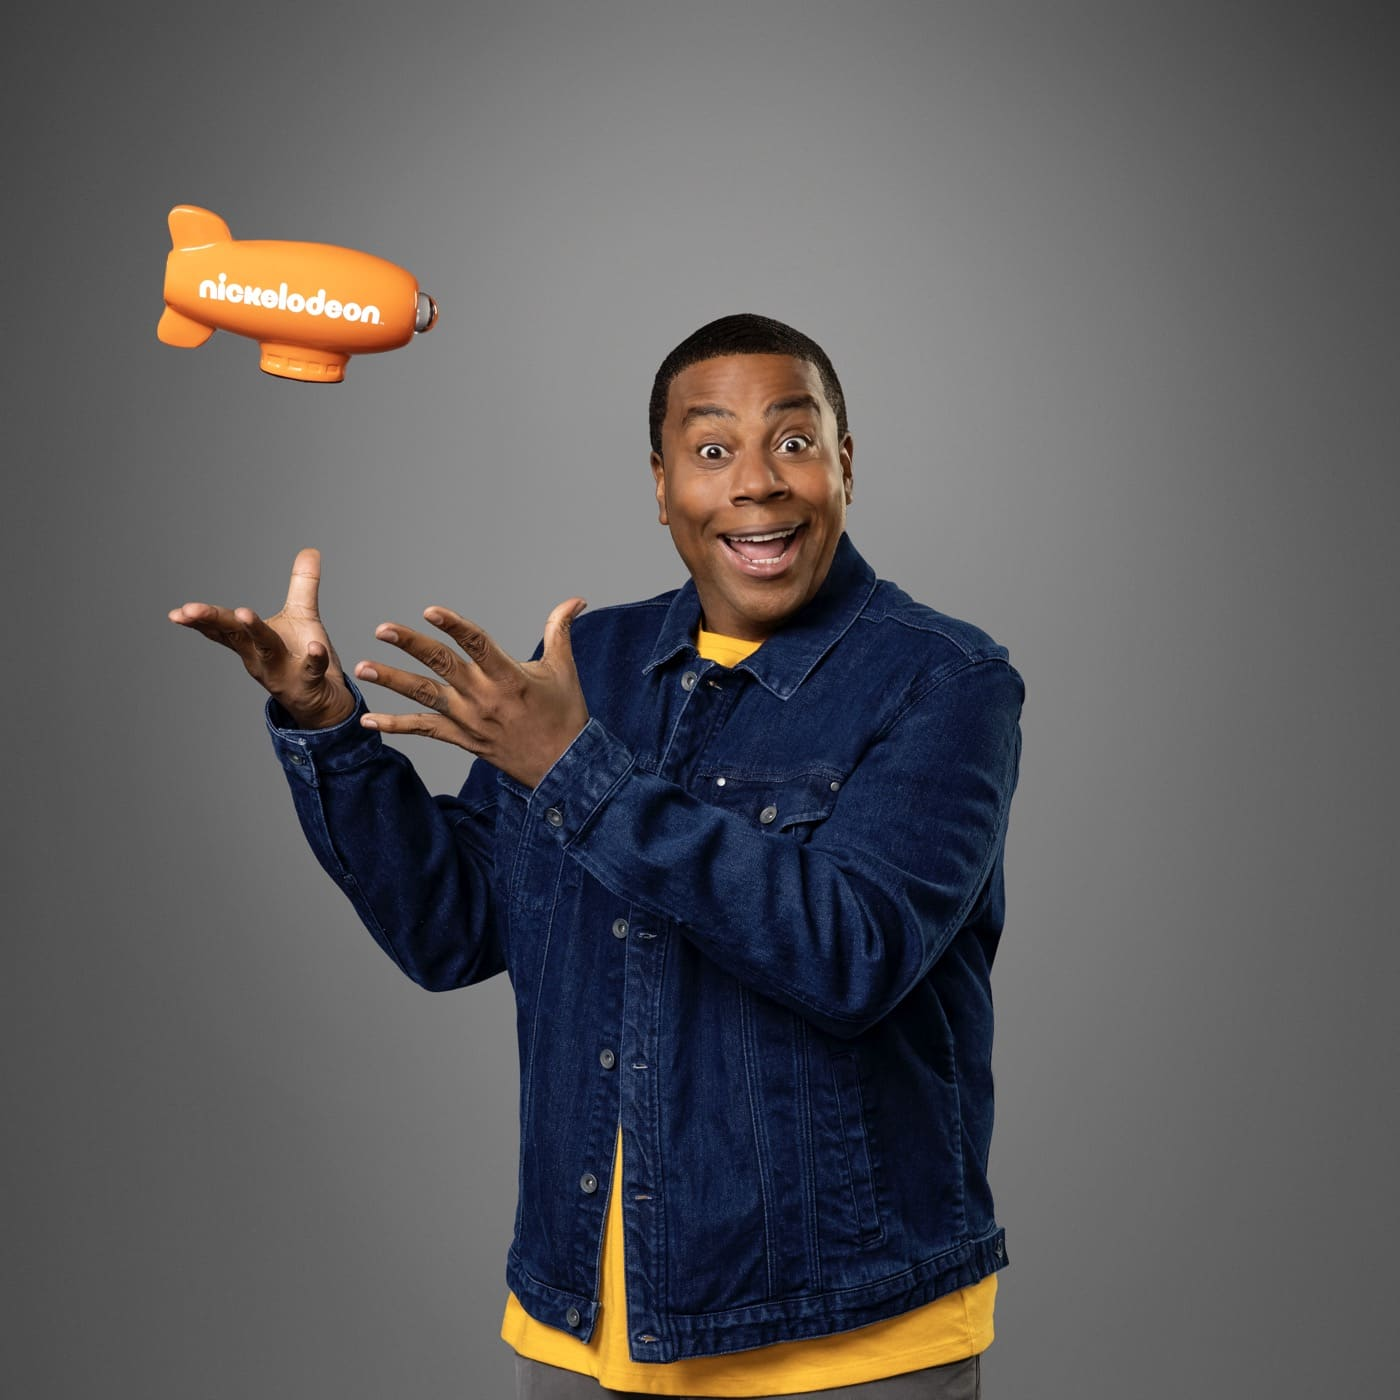 KCA 2021 HOST KEY ART & GALLERY SHOOT: Pictured: KENAN THOMPSON, host of Kids' Choice Awards 2021 on Nickelodeon. Photo: ERIK UMPHERY/Nickelodeon. © 2021 Viacom International, Inc. All Rights Reserved.